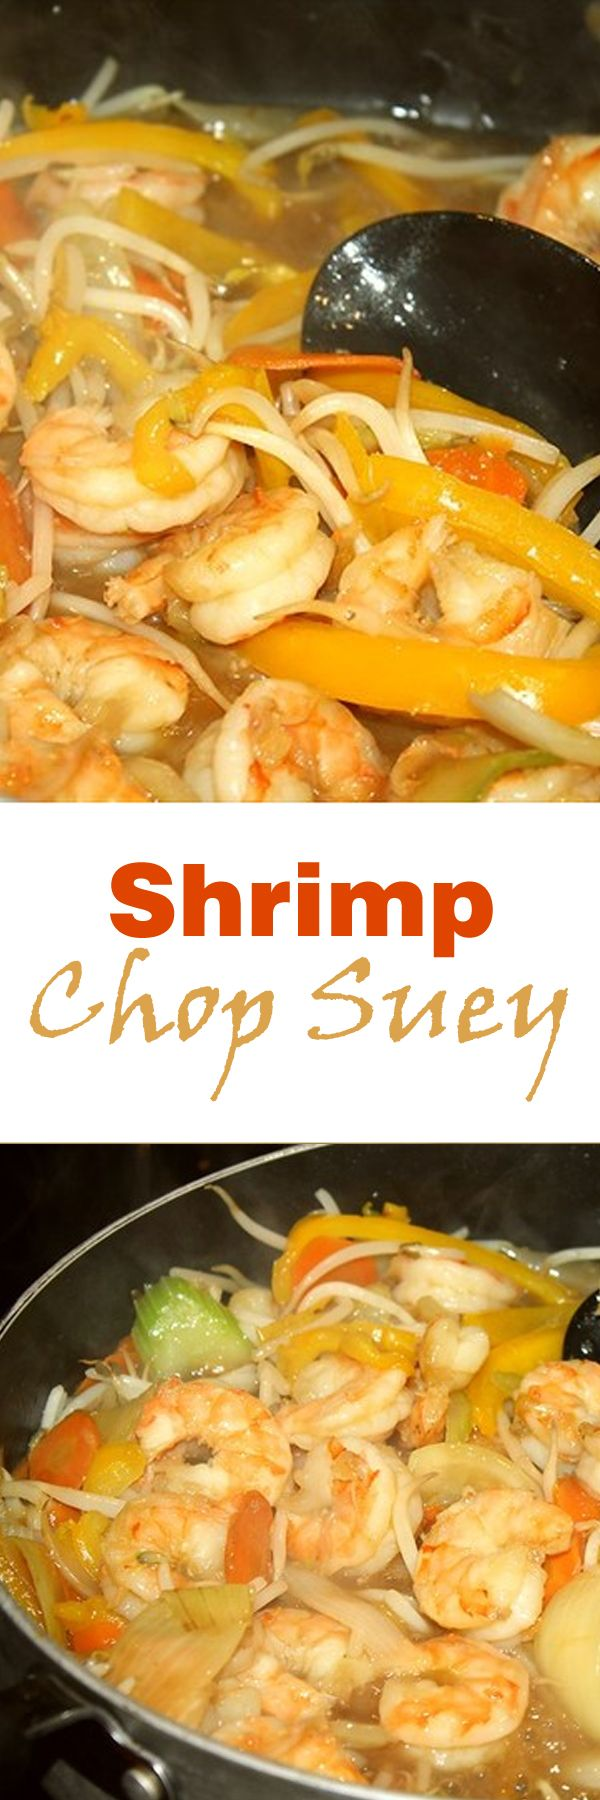 Shrimp Chop Suey-This recipe is easy to put together and one my family requests quite often. If gluten intolerant make sure you are using gluten free soy sauce. recipezazz.com